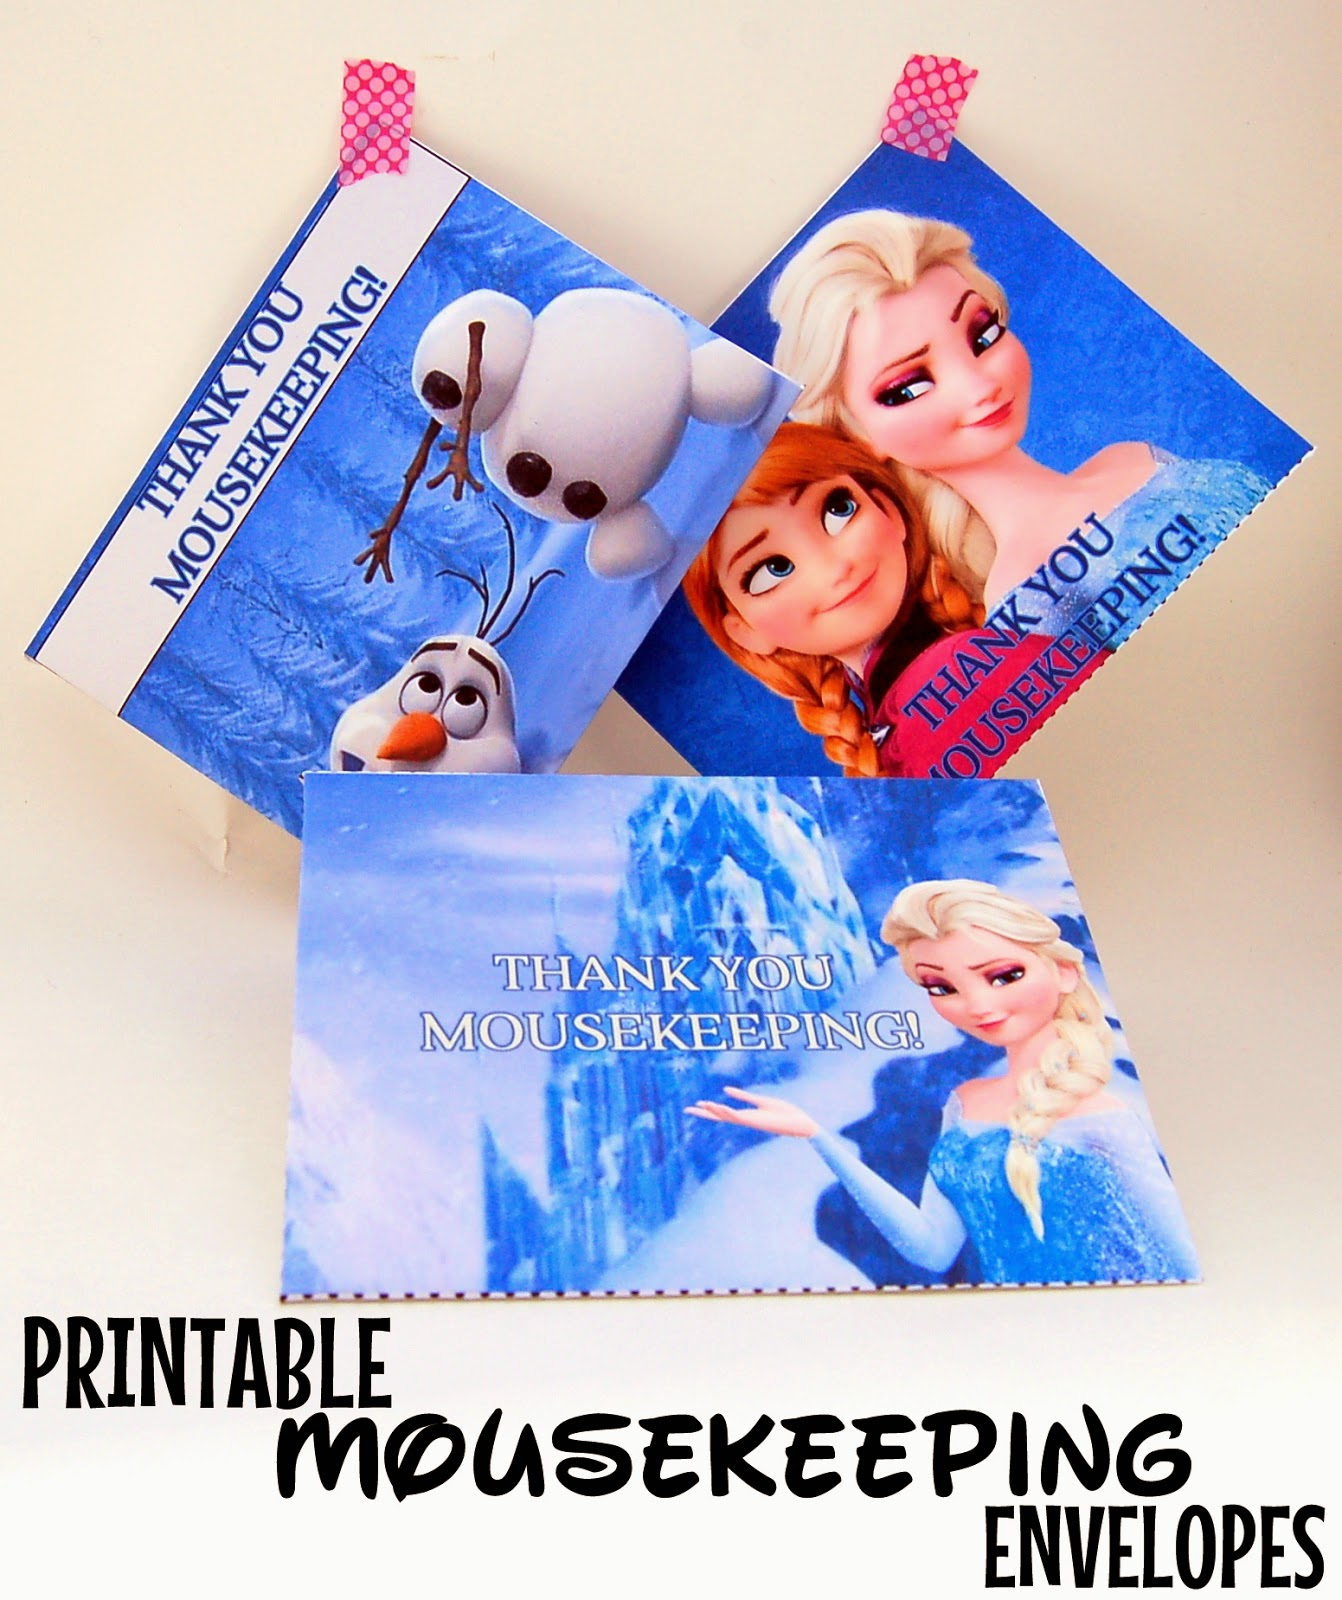 image regarding Disney Printable Envelopes named PaperLark Studio: Totally free Printable Frozen Mousekeeping Envelopes